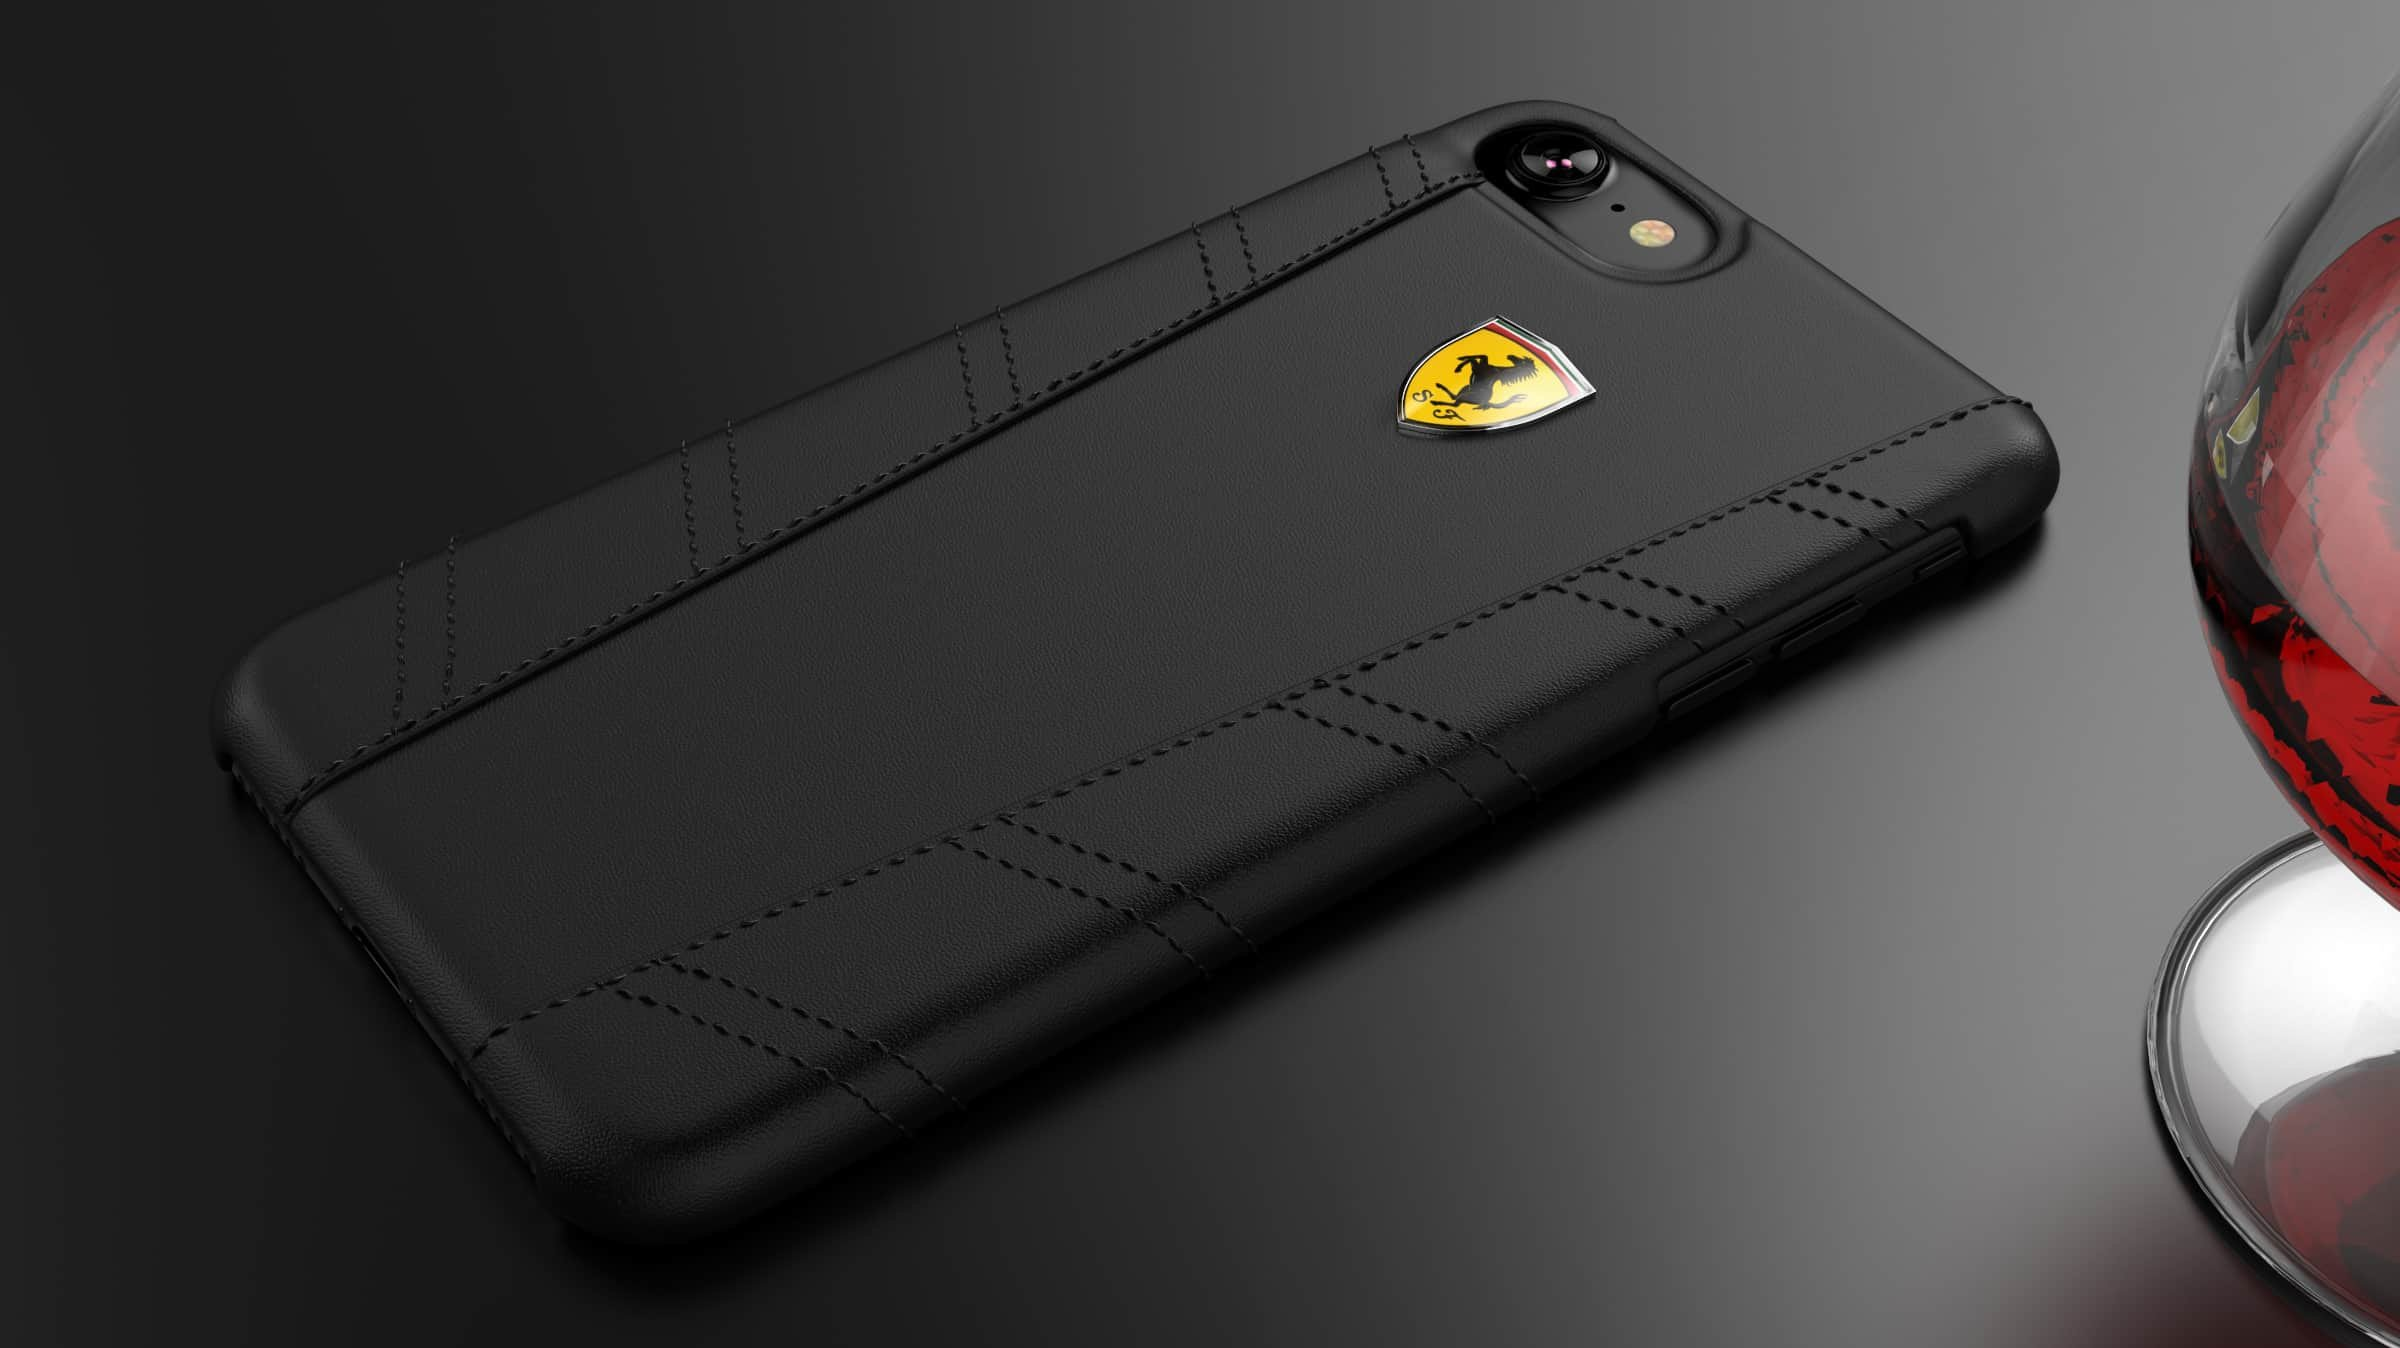 watch 942f7 25df1 Ferrari ® Apple iPhone 8 Plus GTR EDITION Leather Stitched Dual-Material  Leather Back Cover